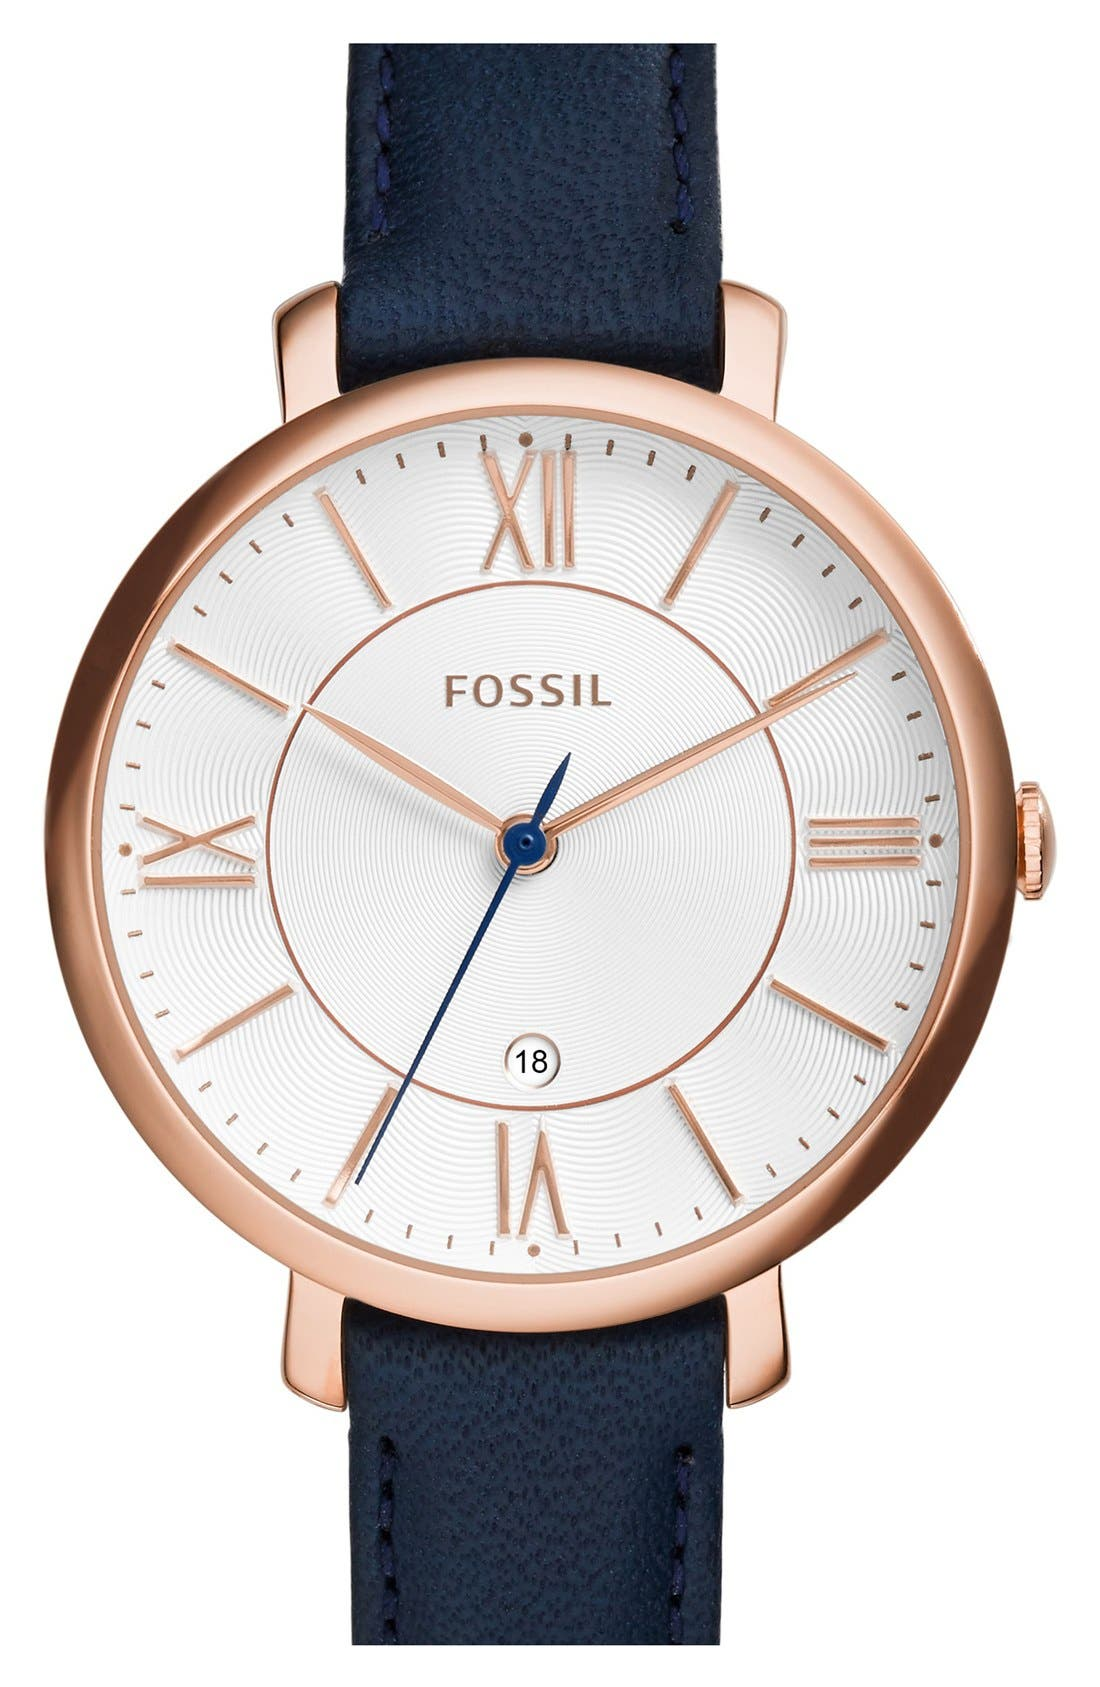 FOSSIL, 'Jacqueline' Round Leather Strap Watch, 36mm, Main thumbnail 1, color, NAVY/ ROSE GOLD